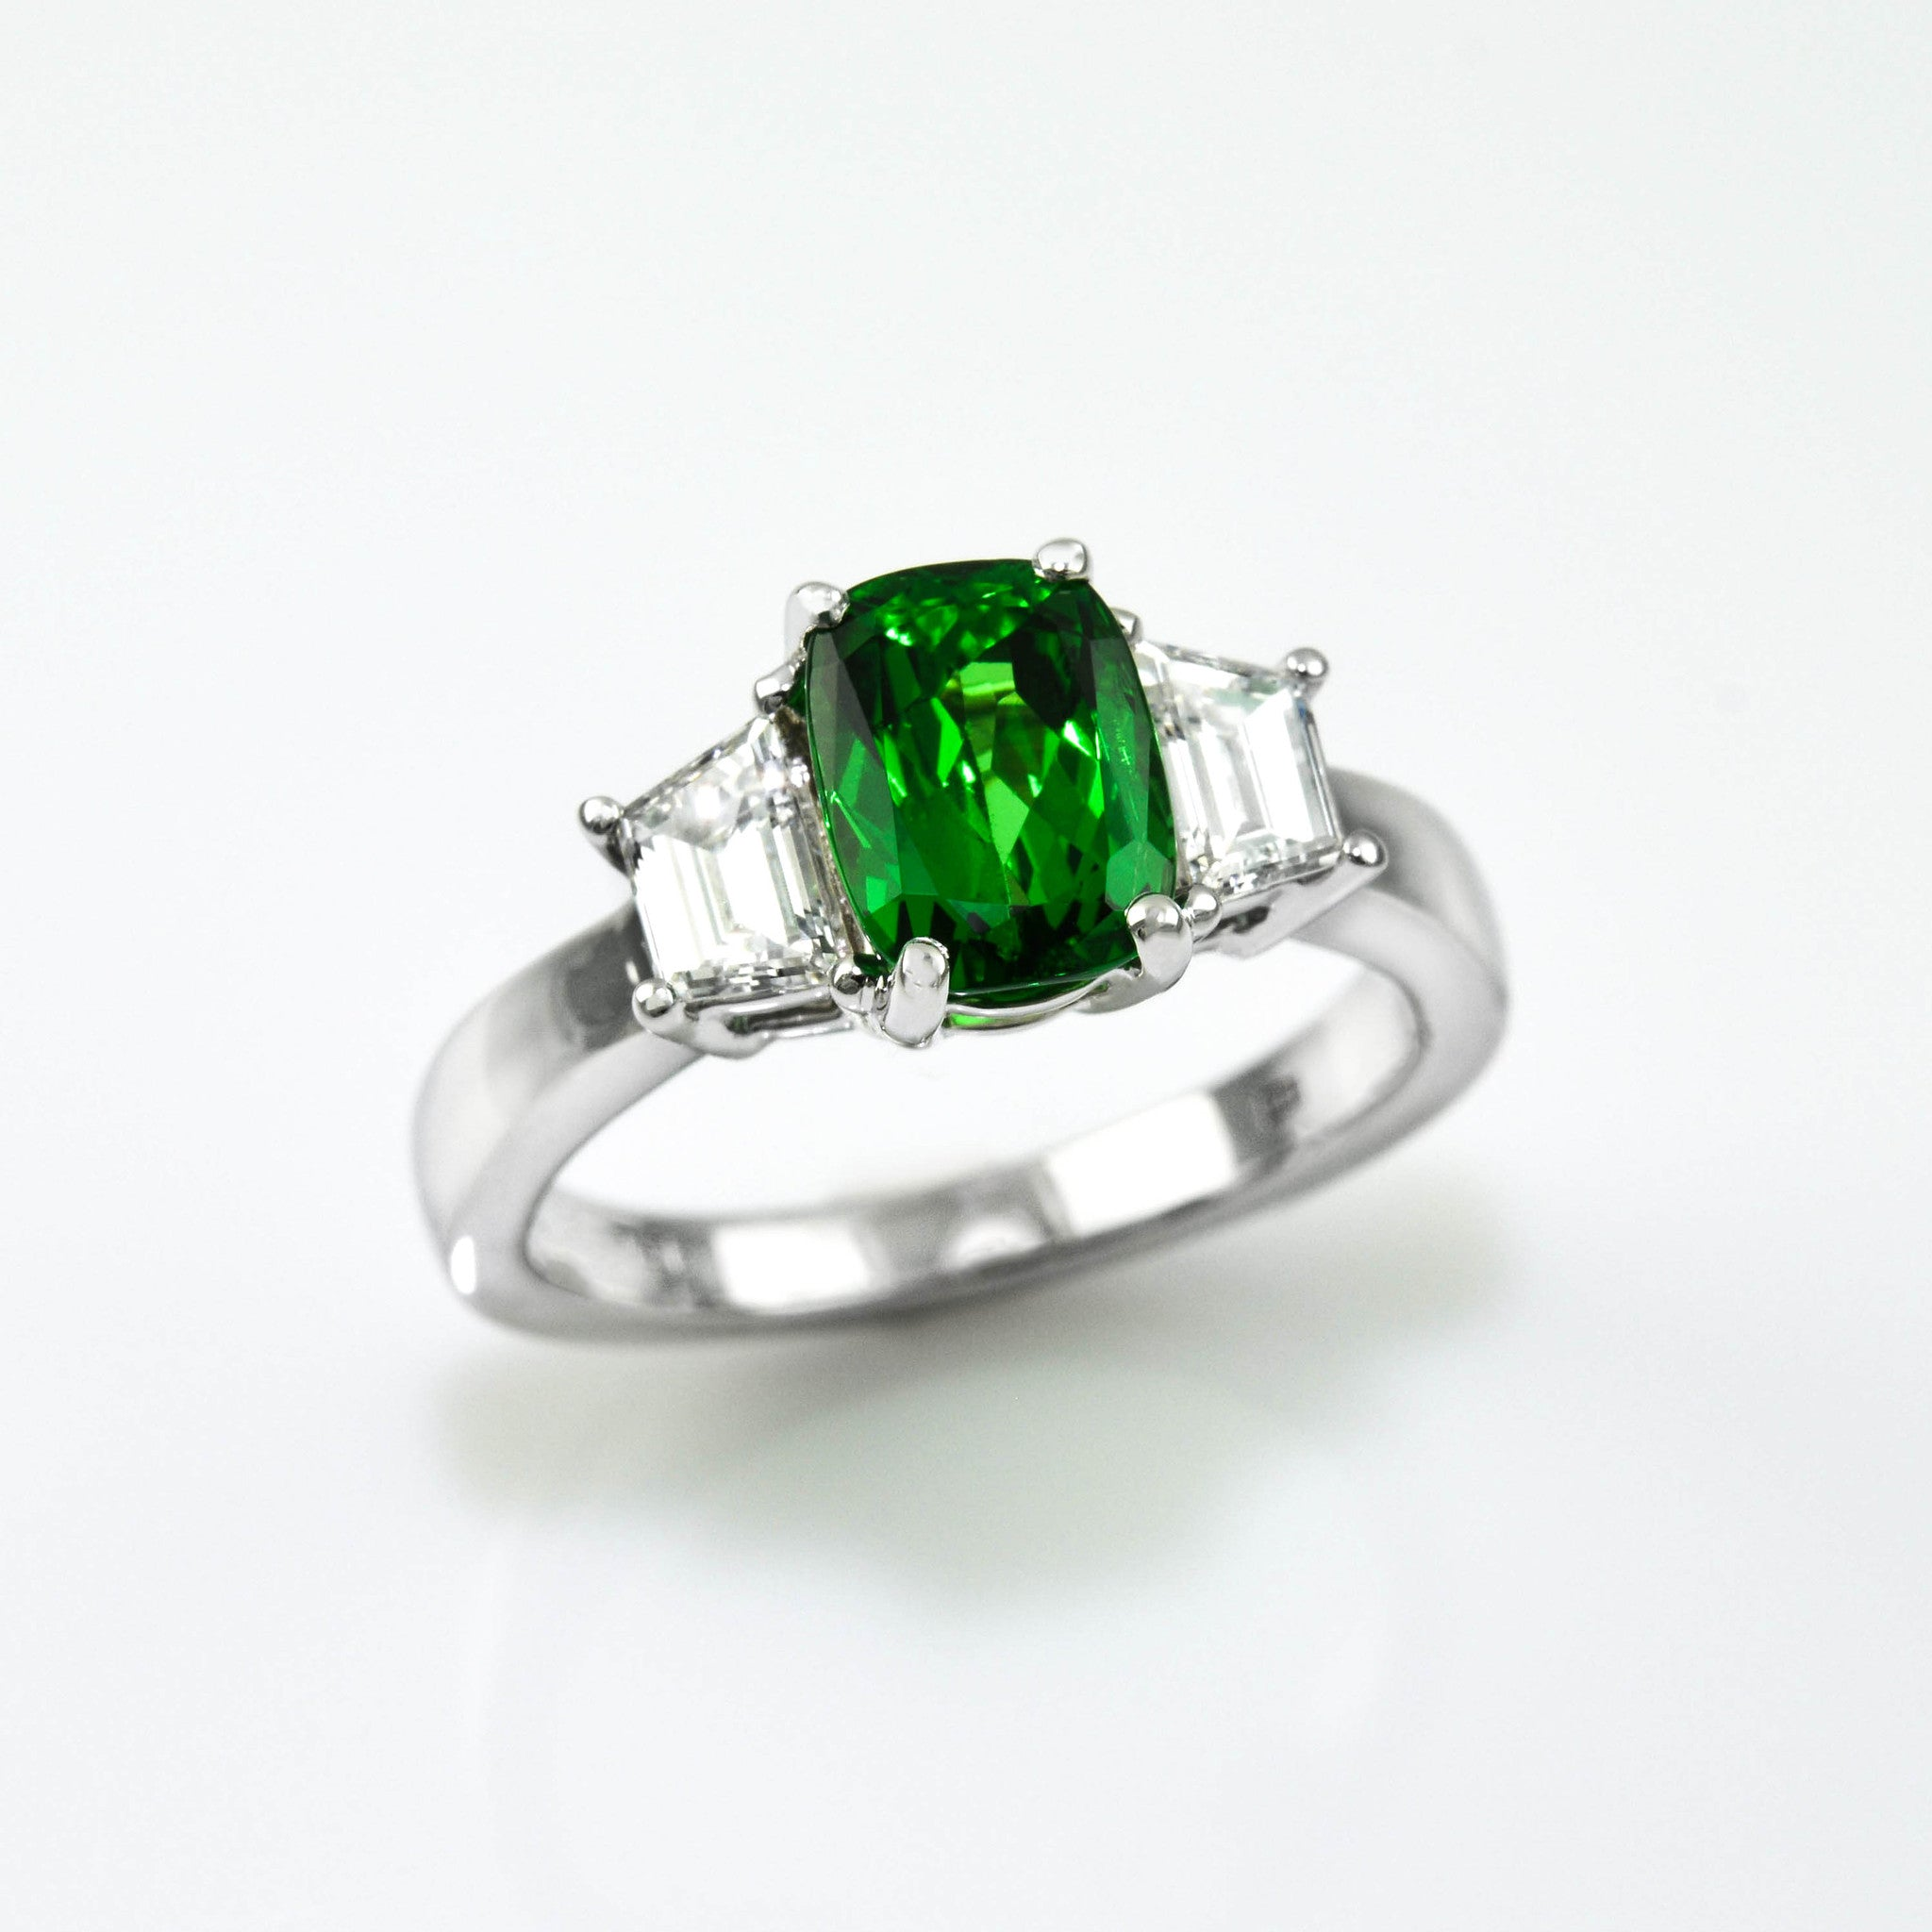 best tsavorite engagement jewellery trans party rings season luxury cocktail stephen webster s